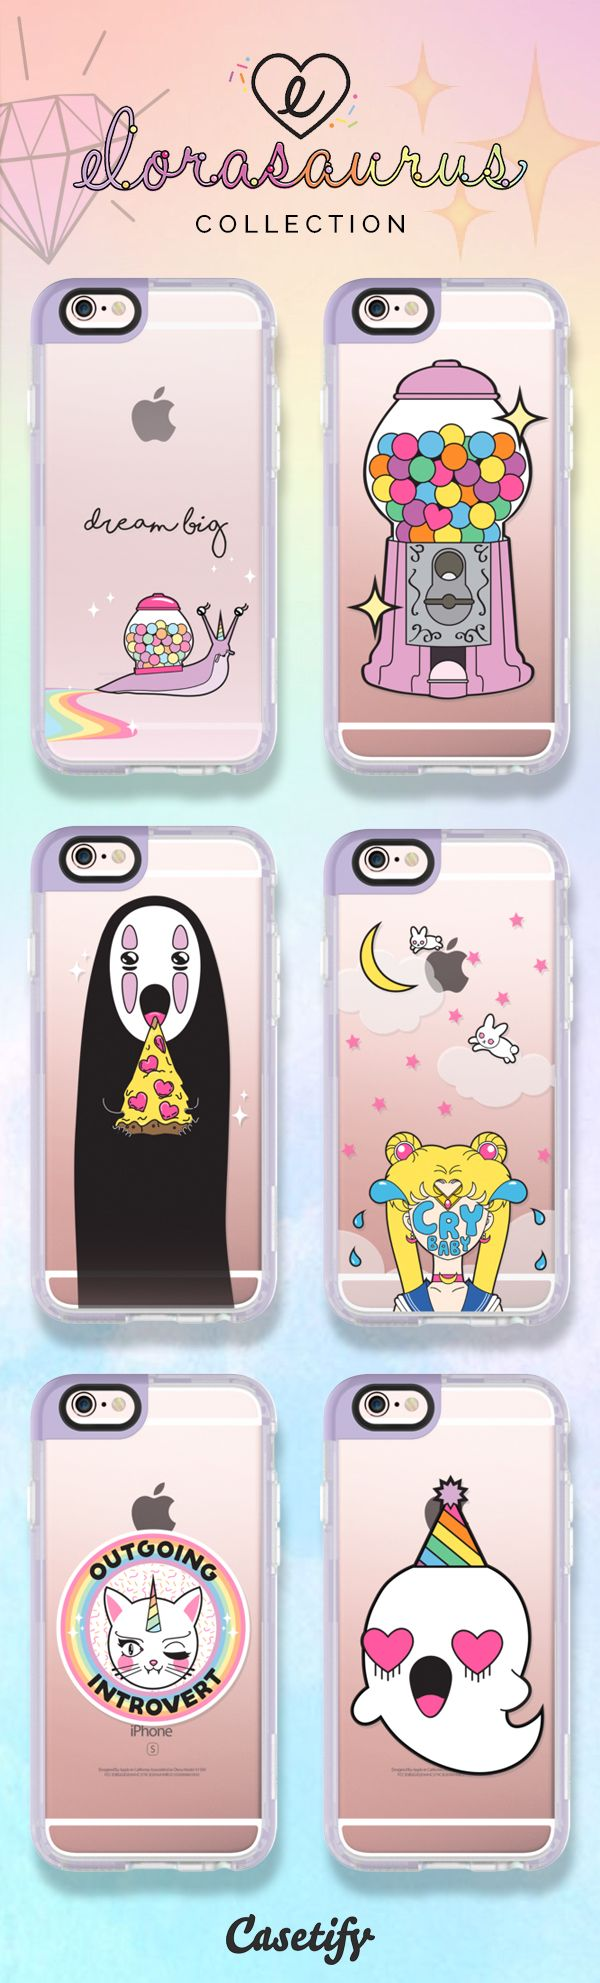 Check out these cute iPhone 6 Case designs by @elorasaurus here >>> https://www.casetify.com/elorasaurus/collection | @casetify